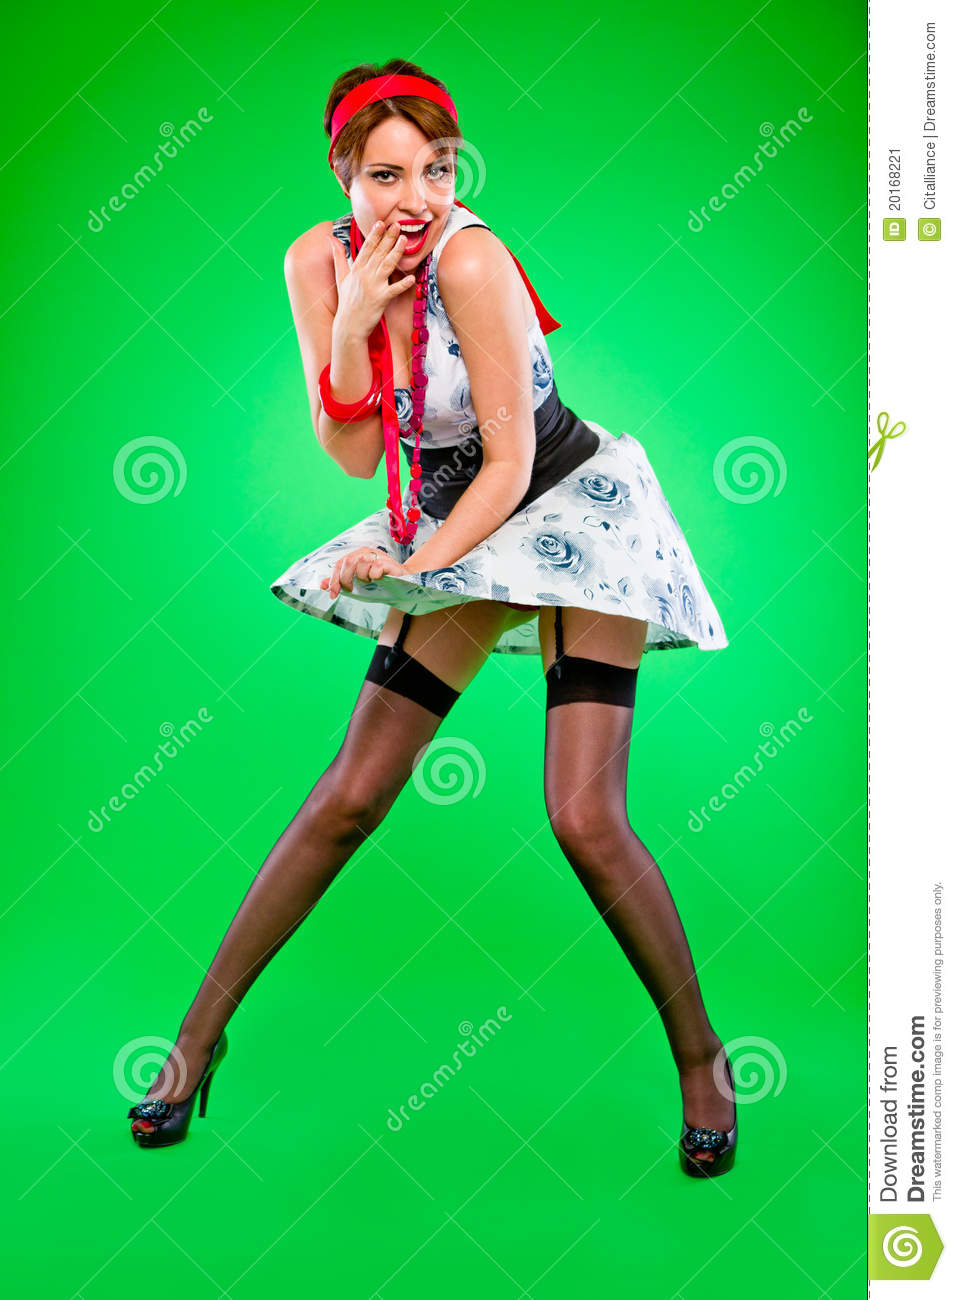 Retro Ladies With Dress Blowing Up Clipart.